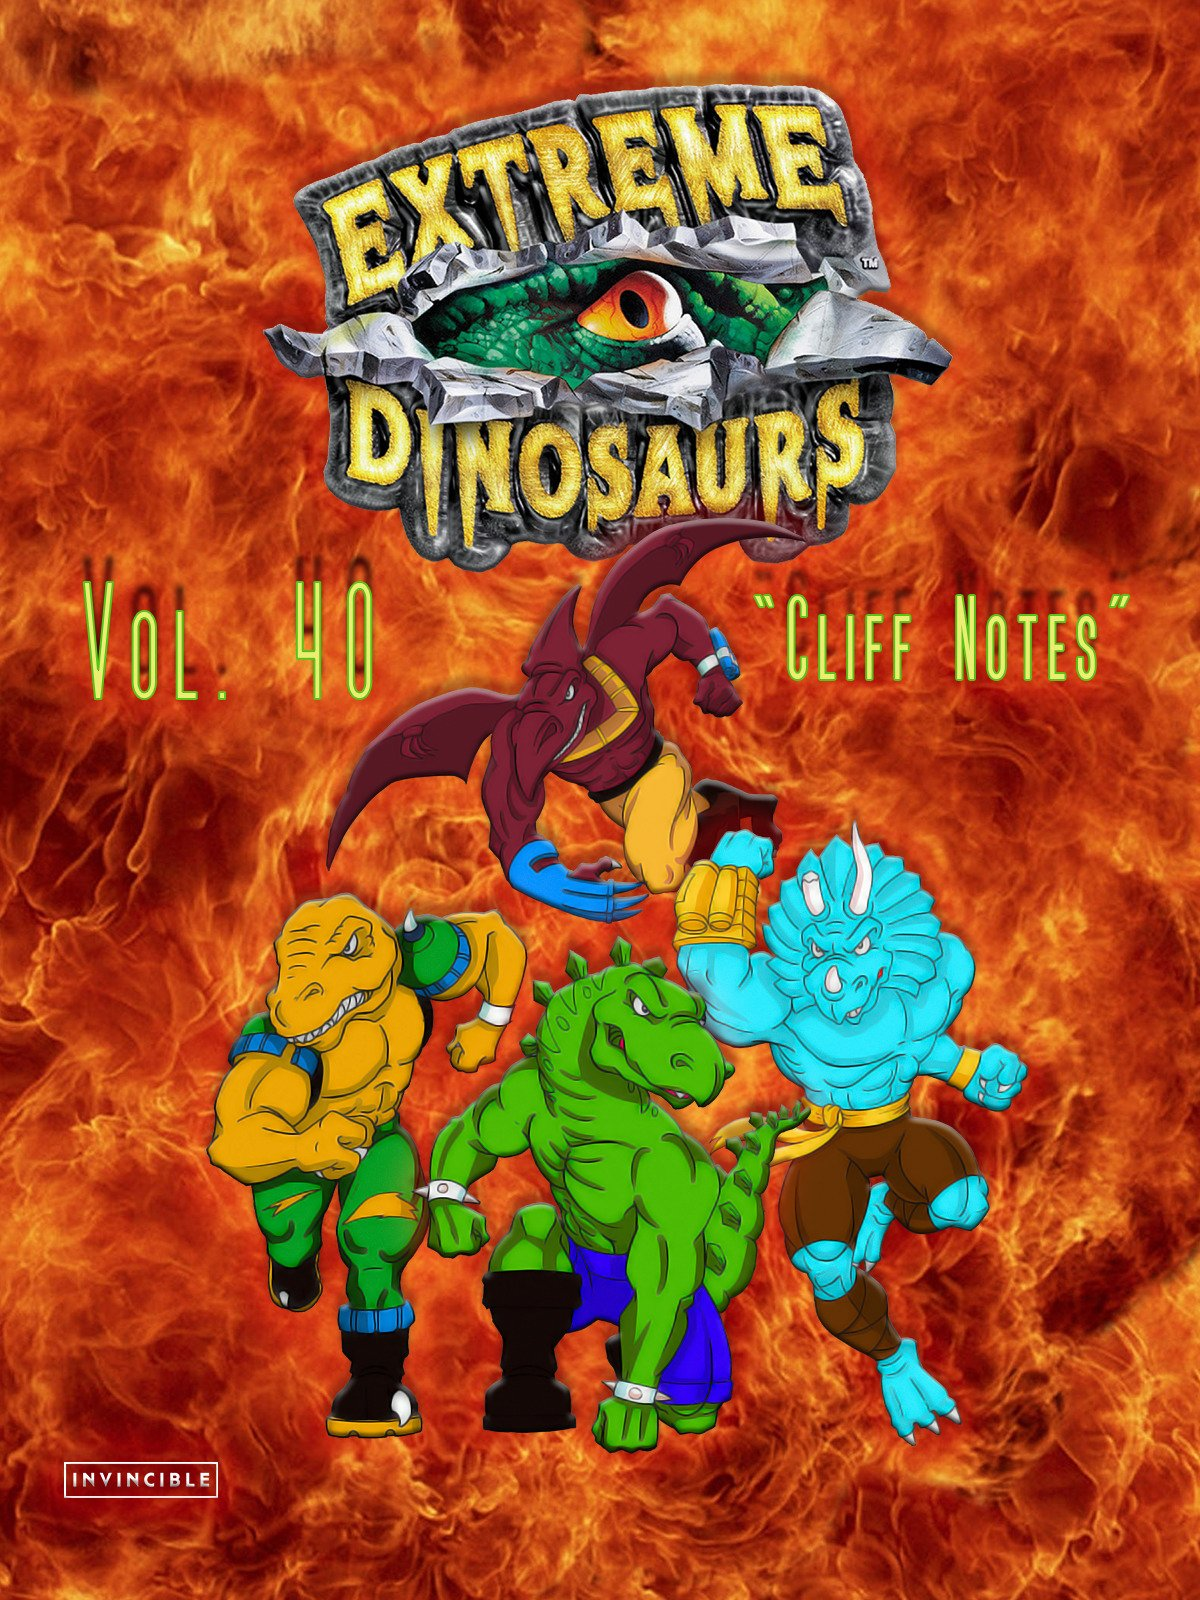 Extreme Dinosaurs Vol. 40Cliff Notes